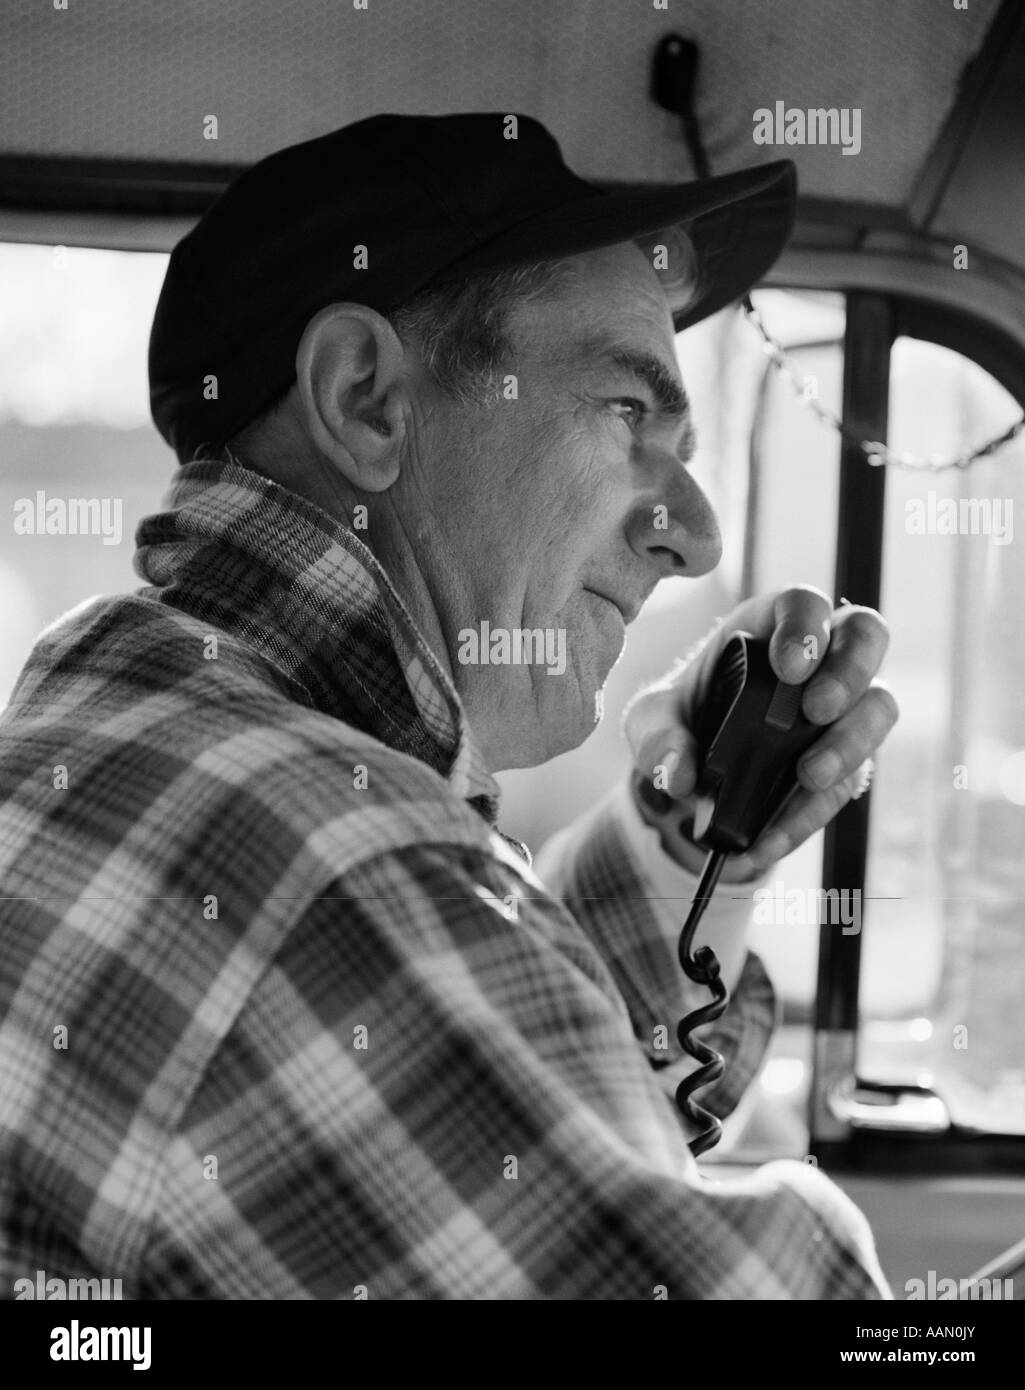 1970s SIDE VIEW OF TRUCKER IN PLAID FLANNEL SHIRT   BASEBALL CAP USING CB  RADIO 07da6e897c7